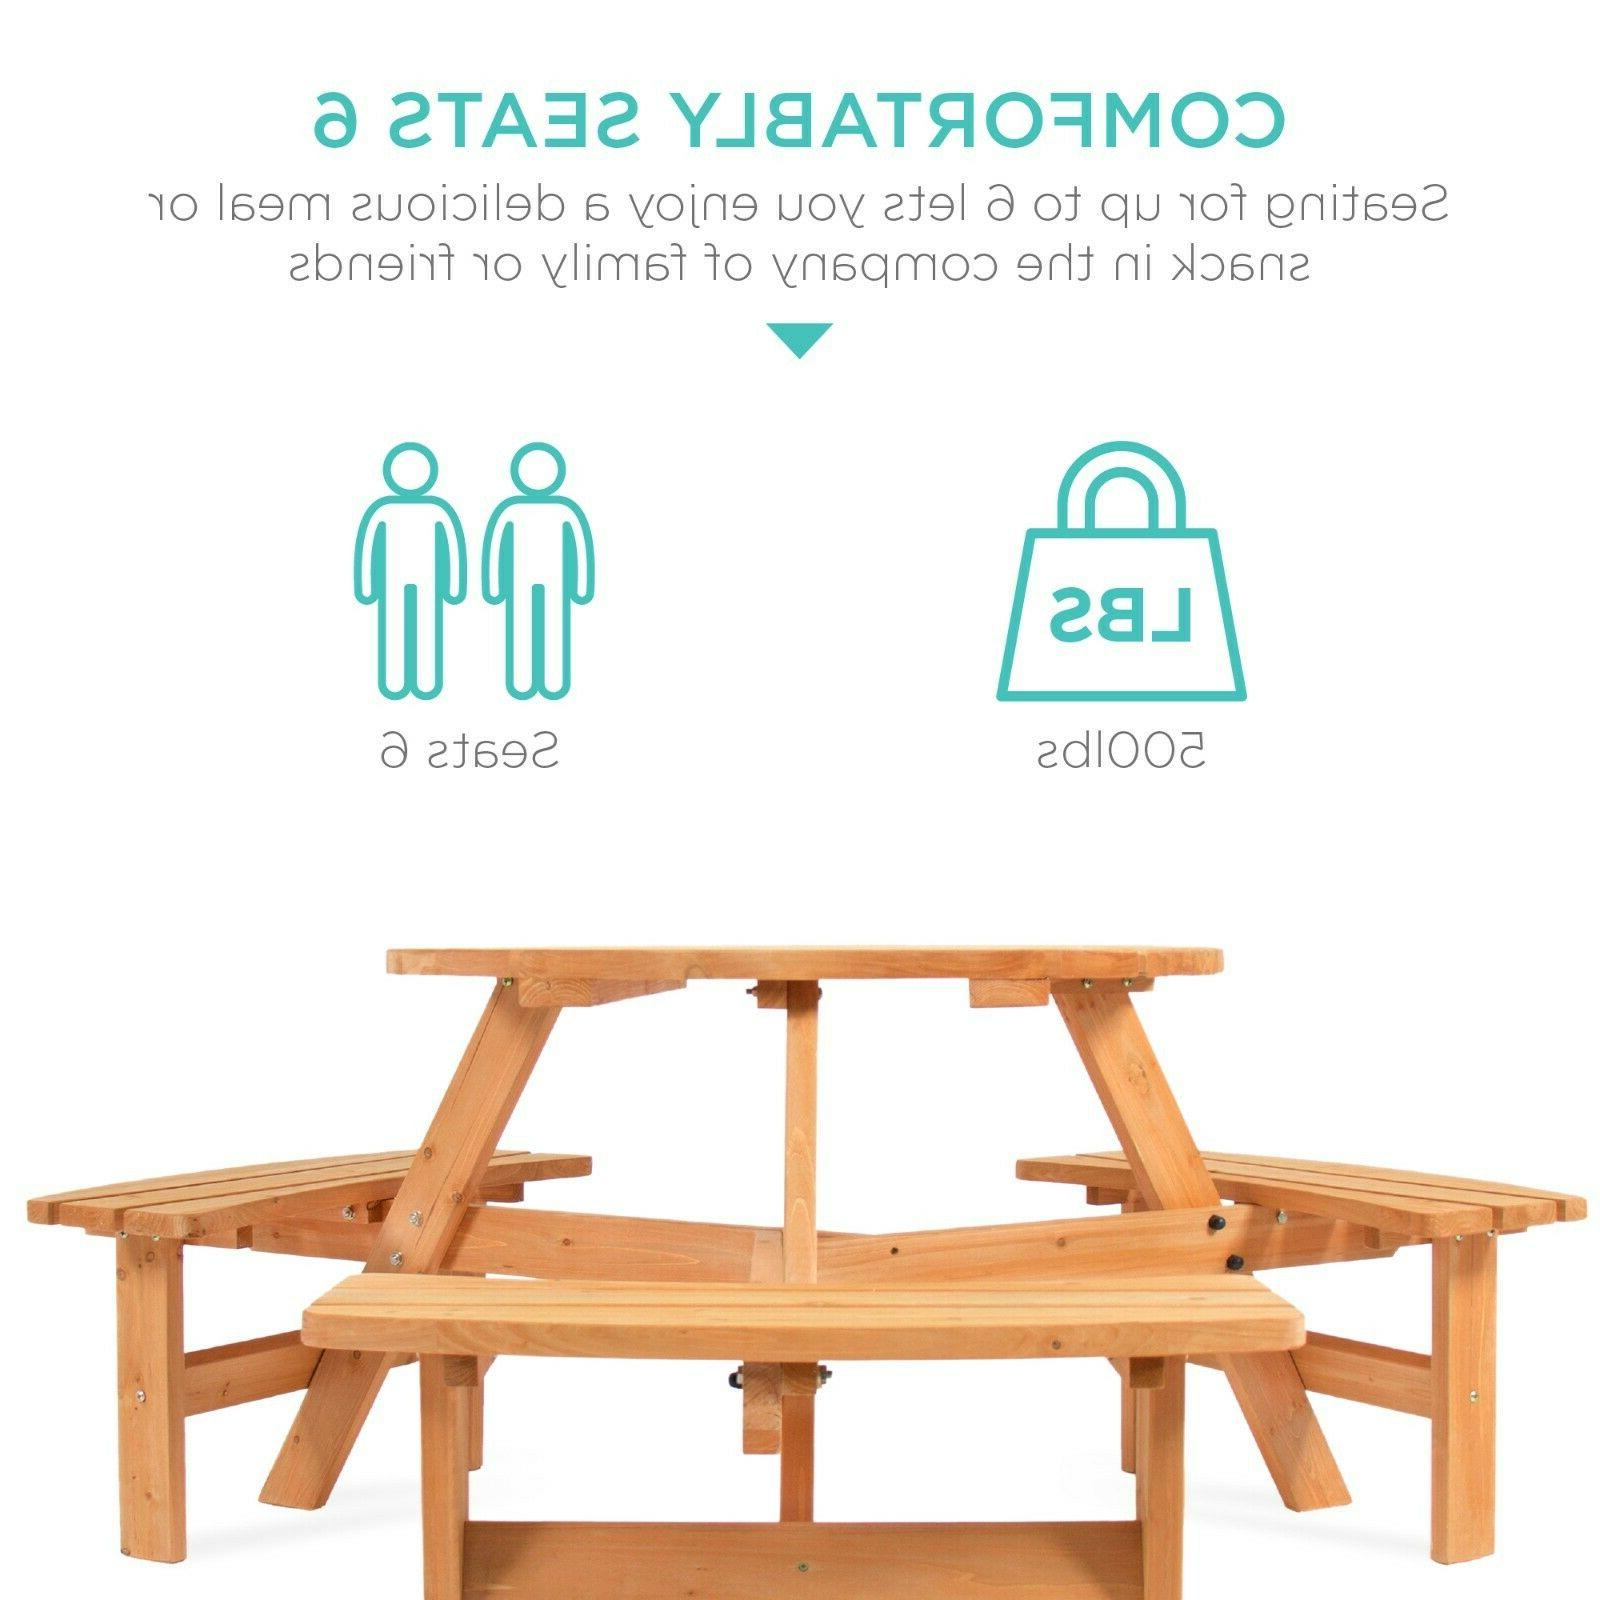 Best Choice Circular Outdoor Table w/ 3